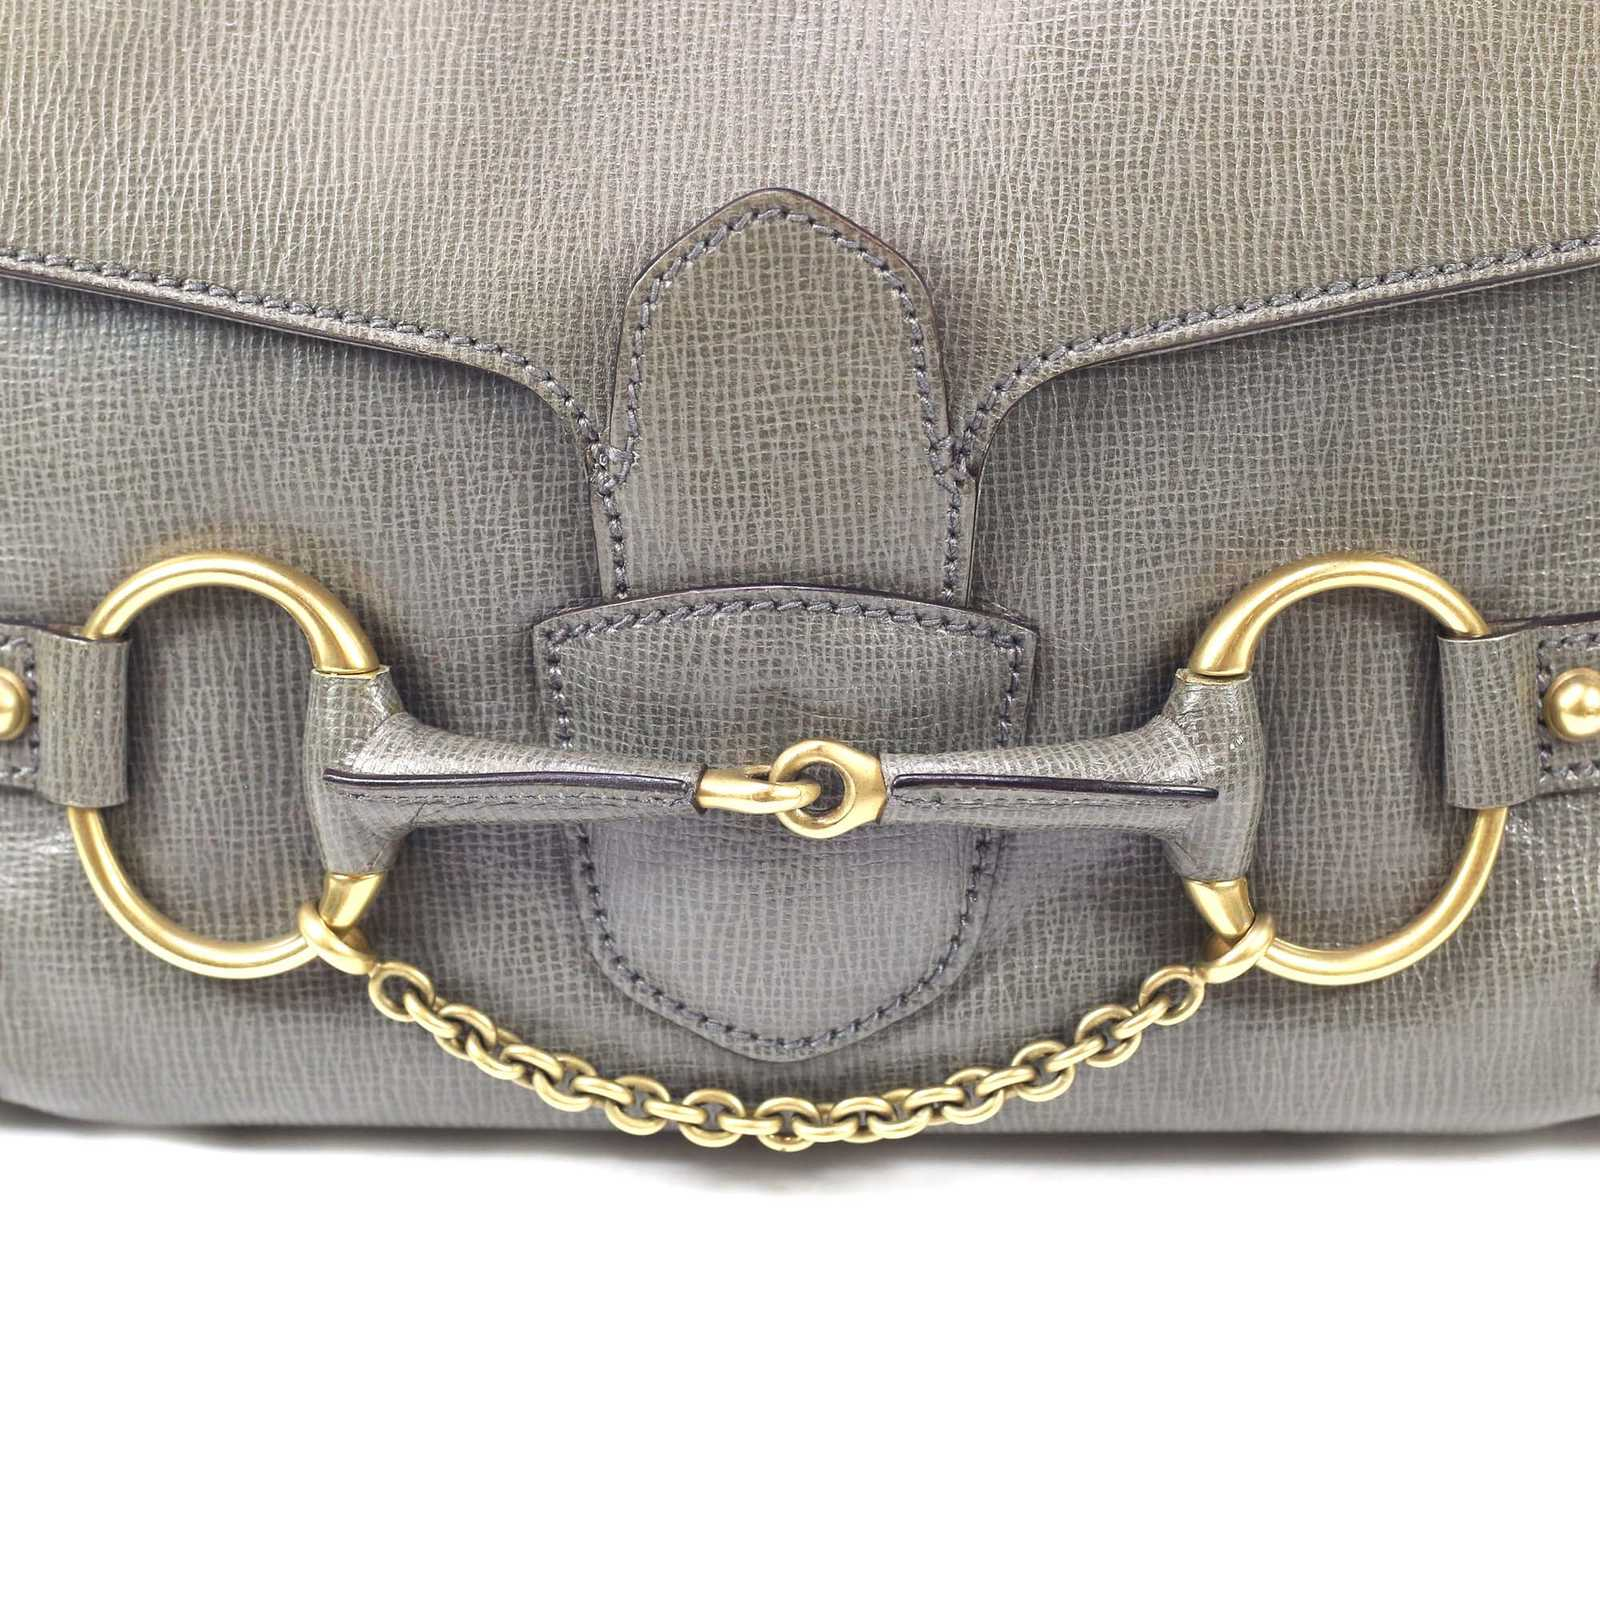 2a8b45fafea ... Authentic Second Hand Gucci Horsebit Bag (PSS-005-00019) - Thumbnail 3  ...